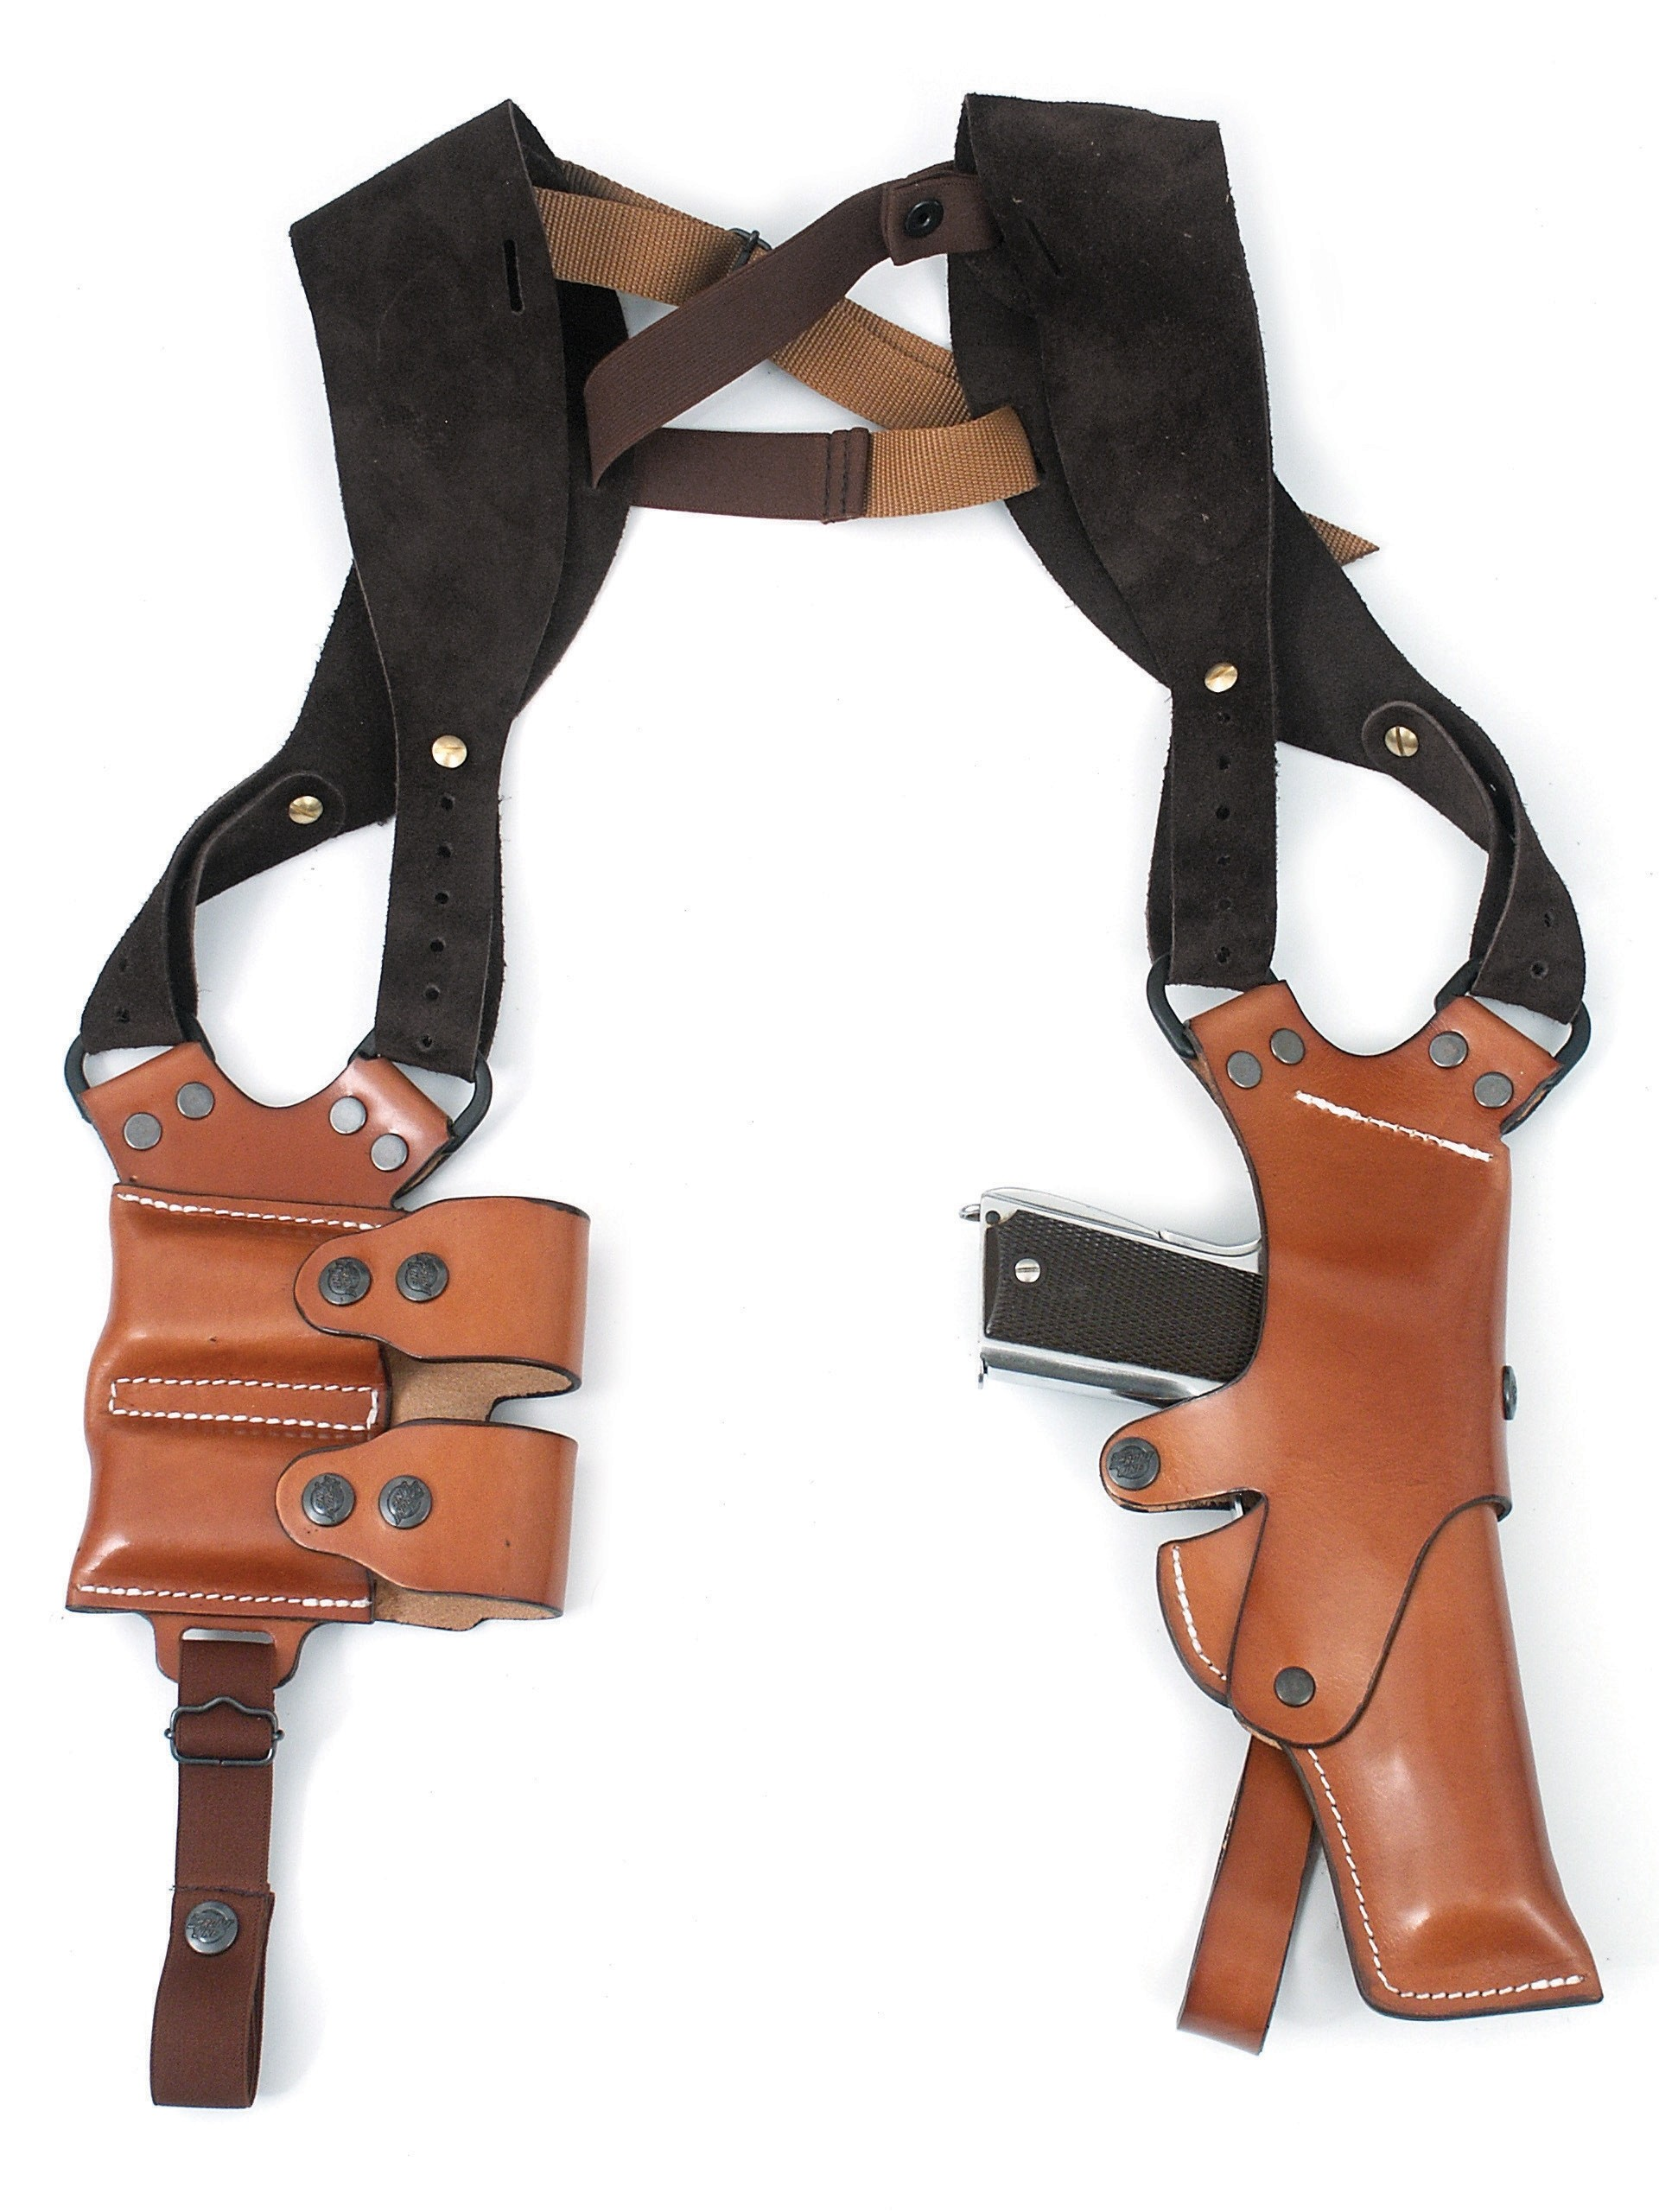 Hinge Holster & Mag. Pouch